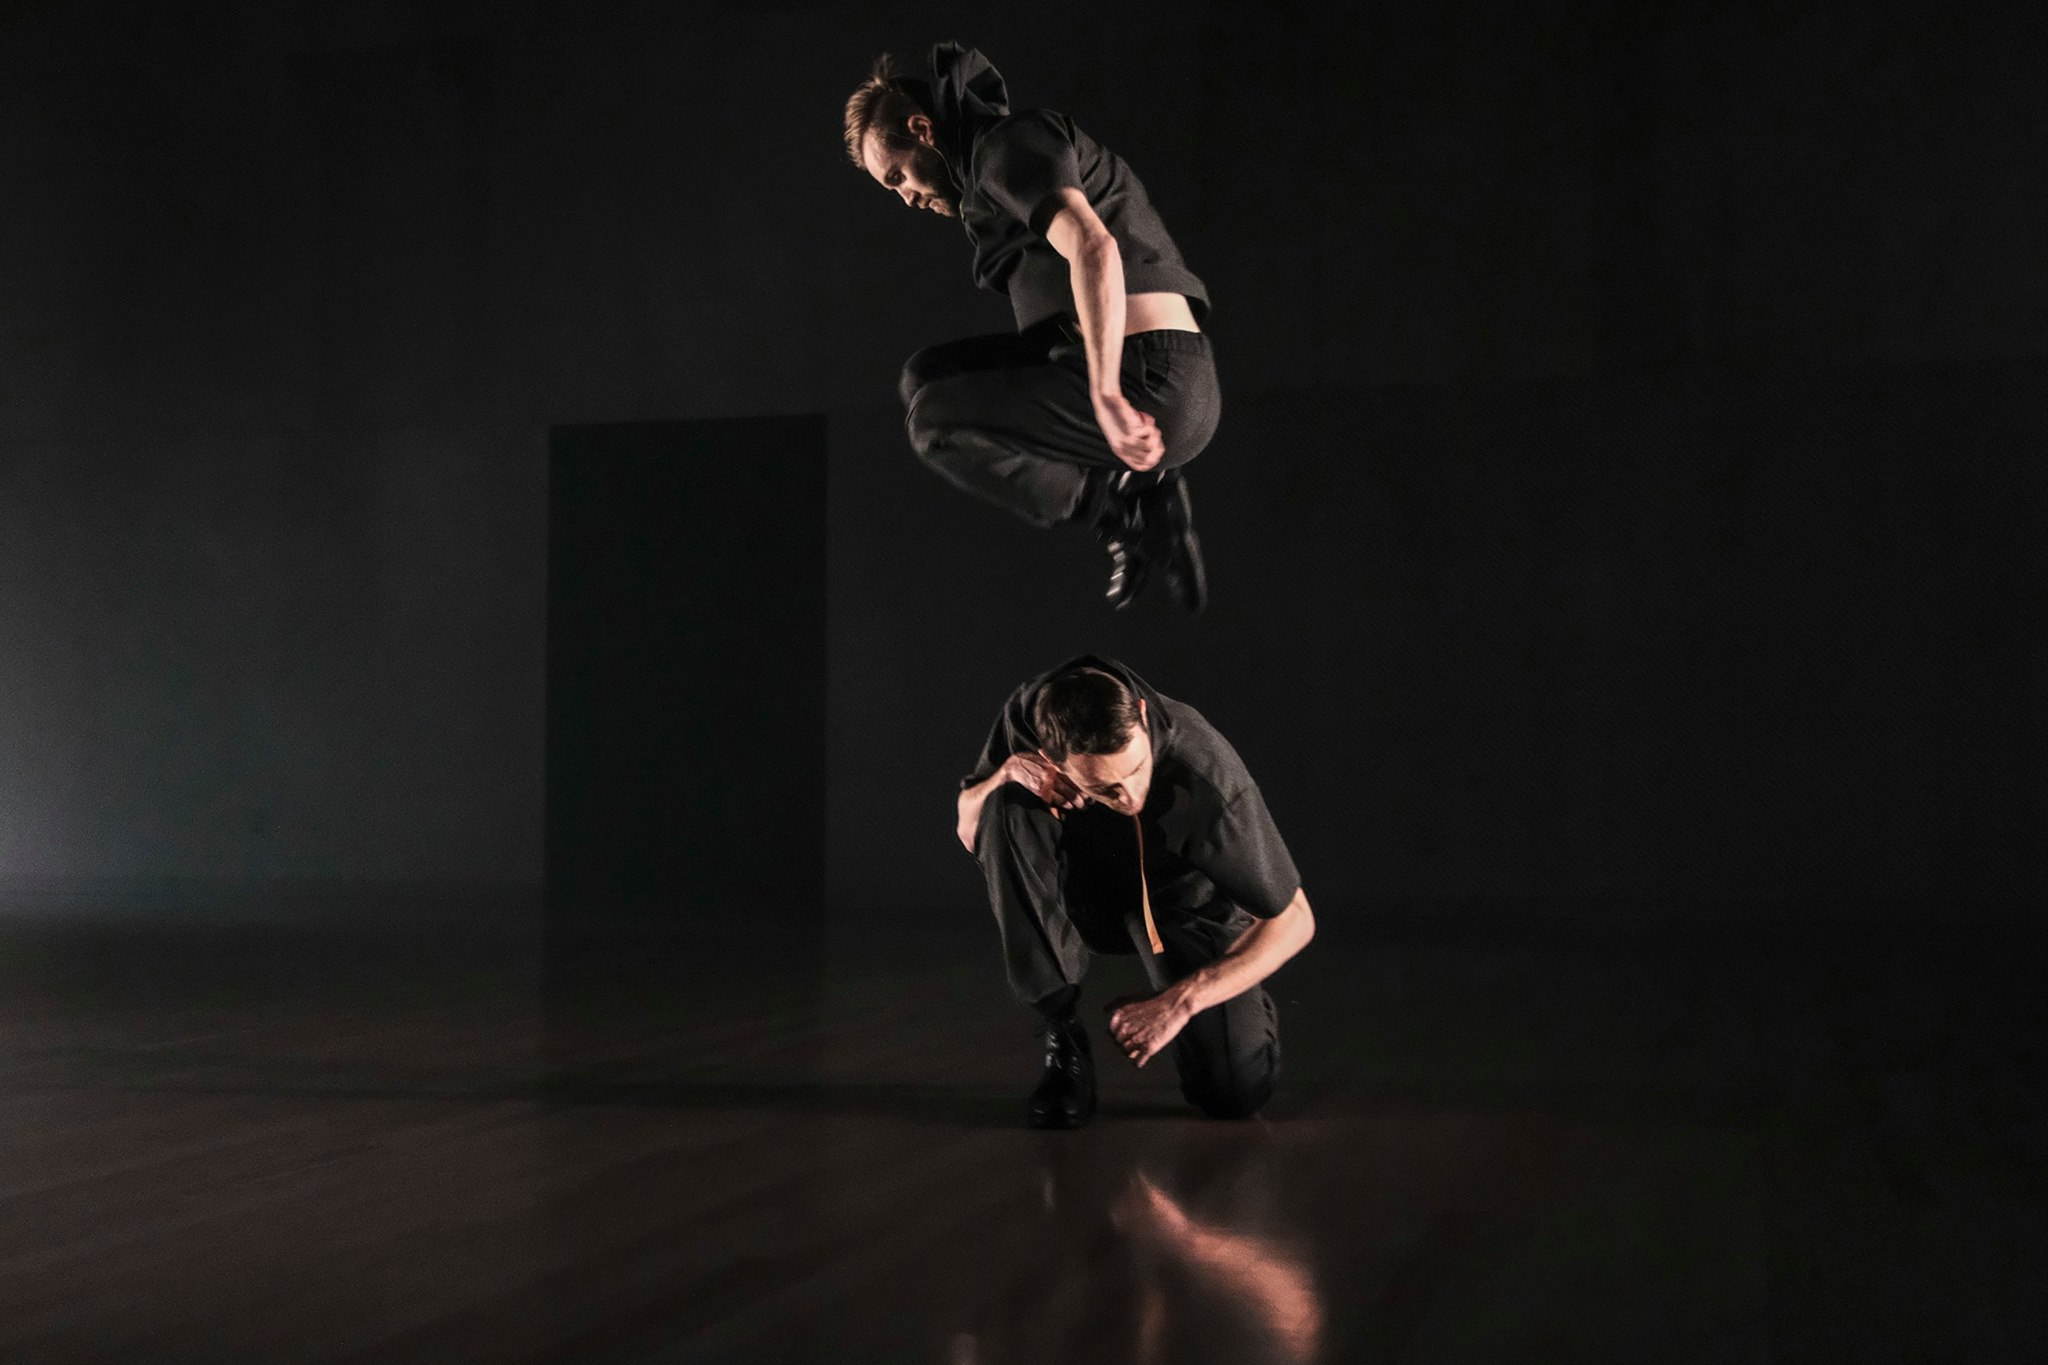 Forces Connexes: Quand danse et science s'entrechoquent